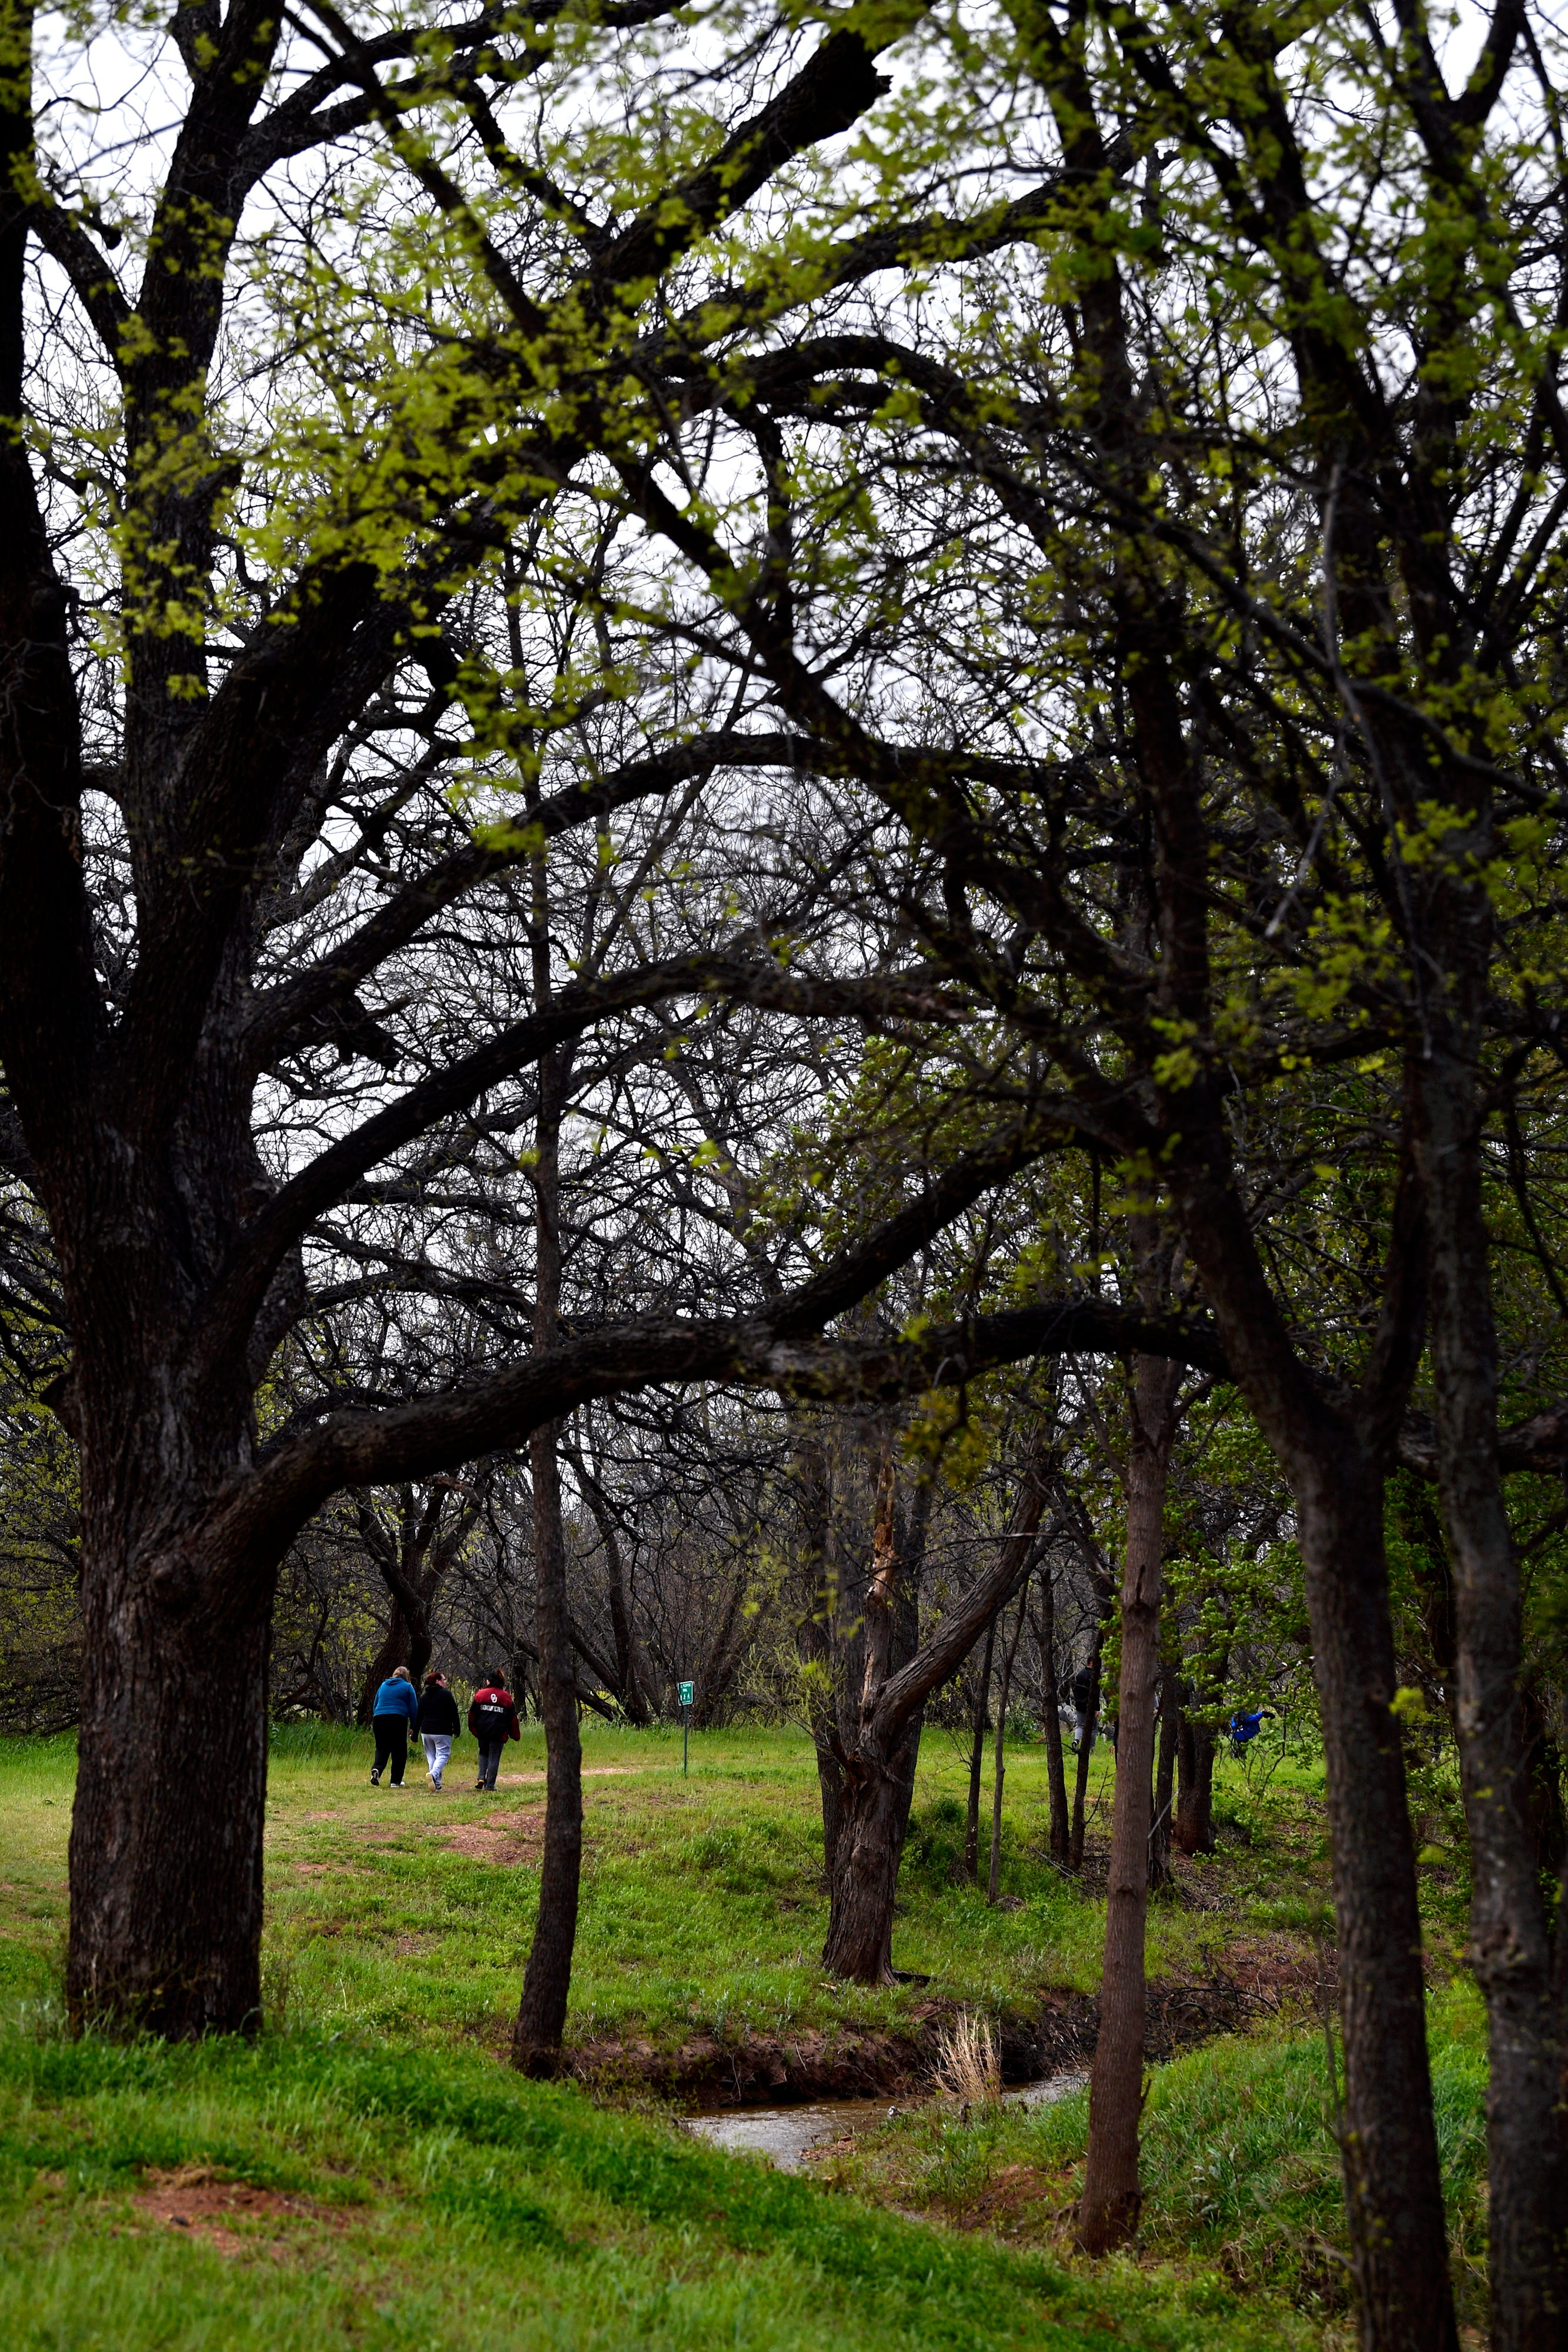 Hikers return to the starting point of the annual Mayor's Hike along Cedar Creek Saturday. While the grass along the Cedar Creek Waterway was green, leaves were just beginning to be seen among the branches along the route.